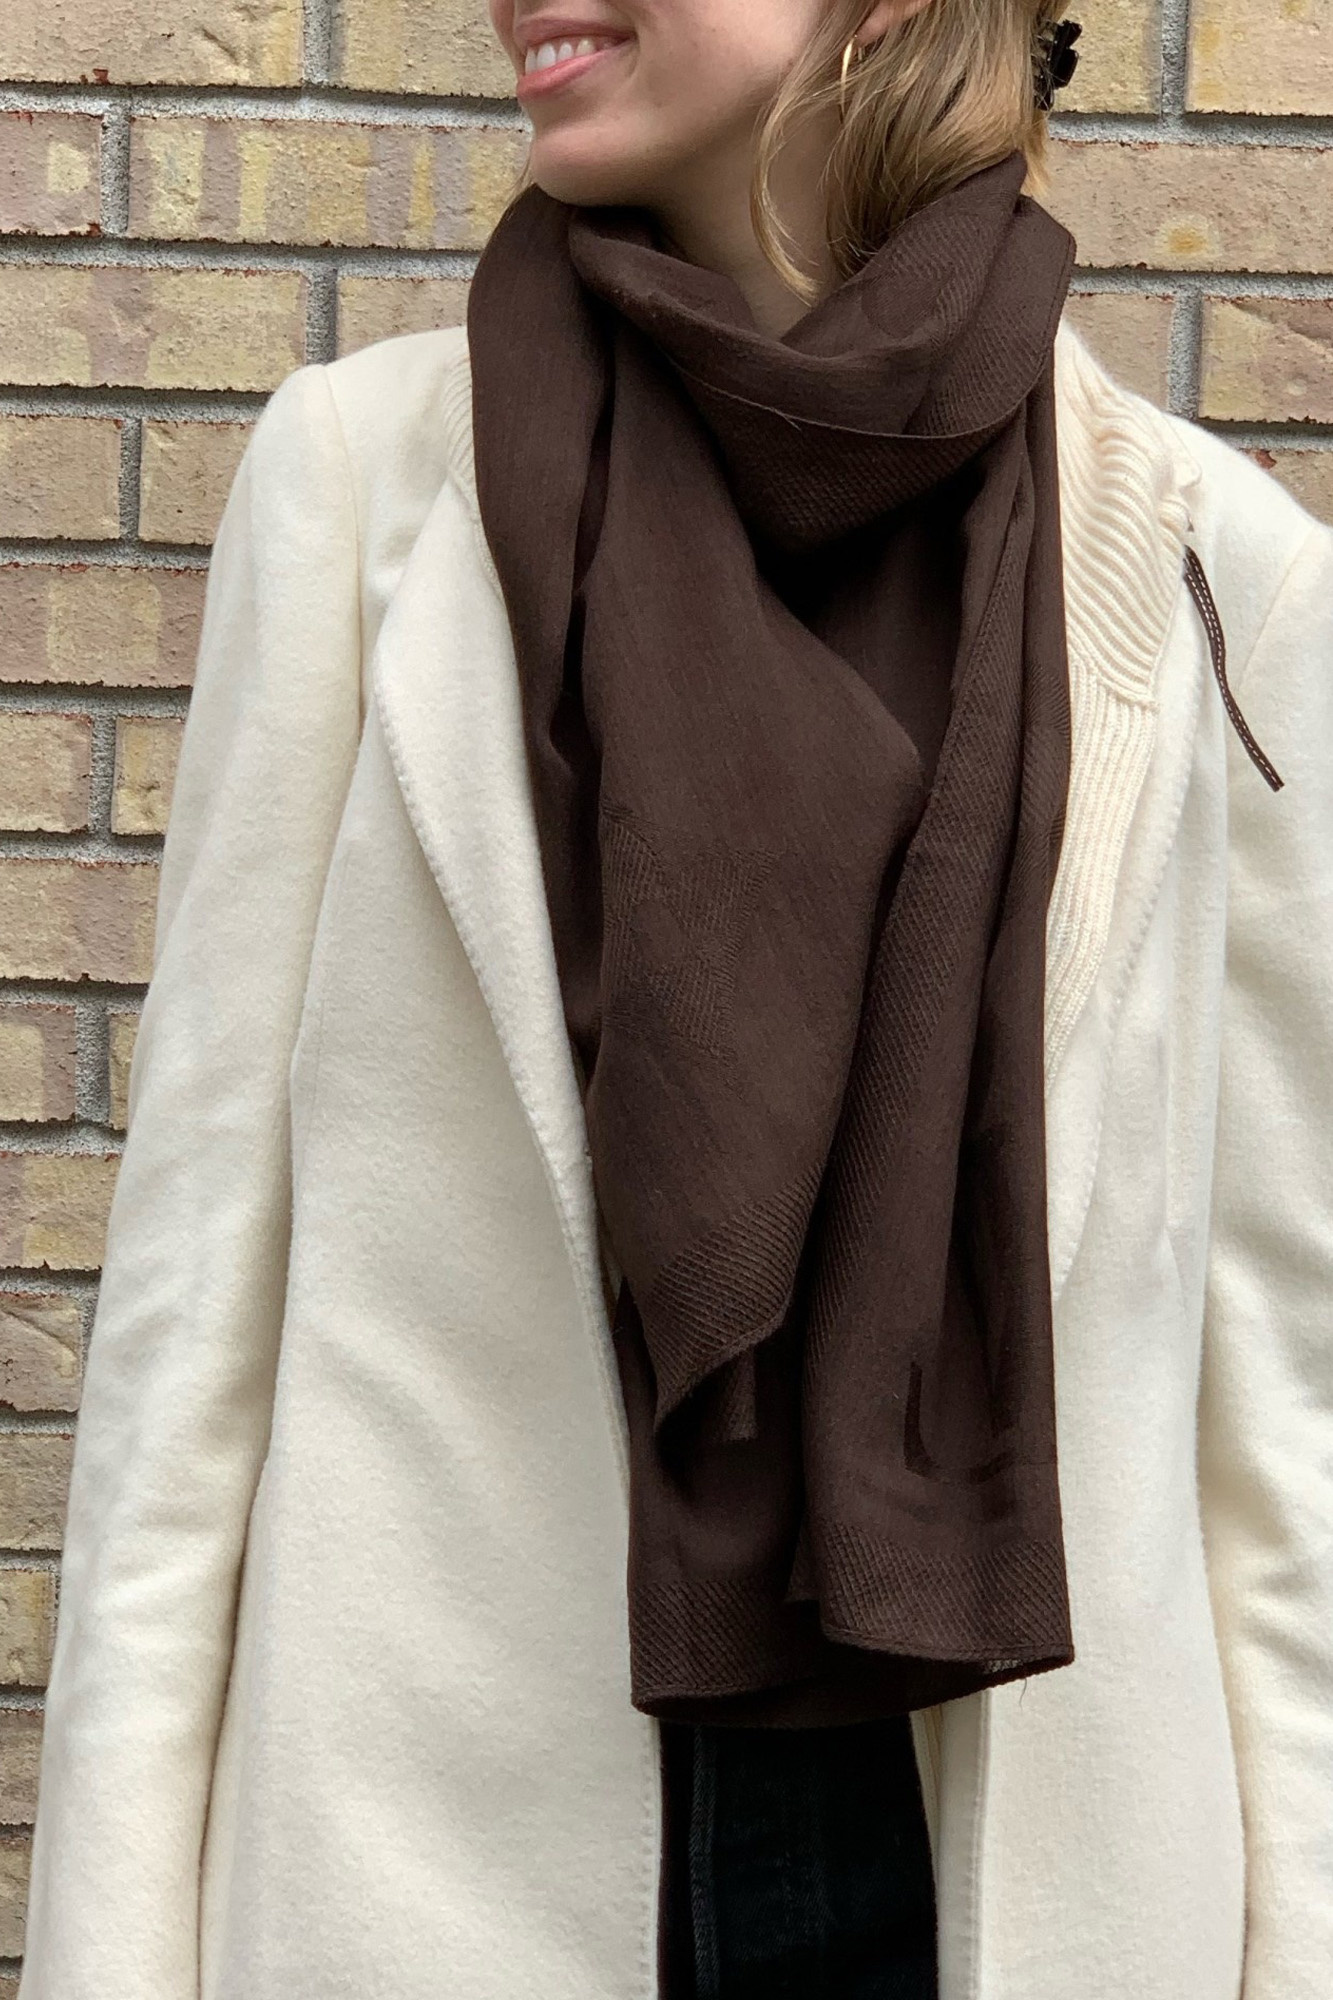 Louis Vuitton DARK BROWN SCARF WITH LARGE MONOGRAMS